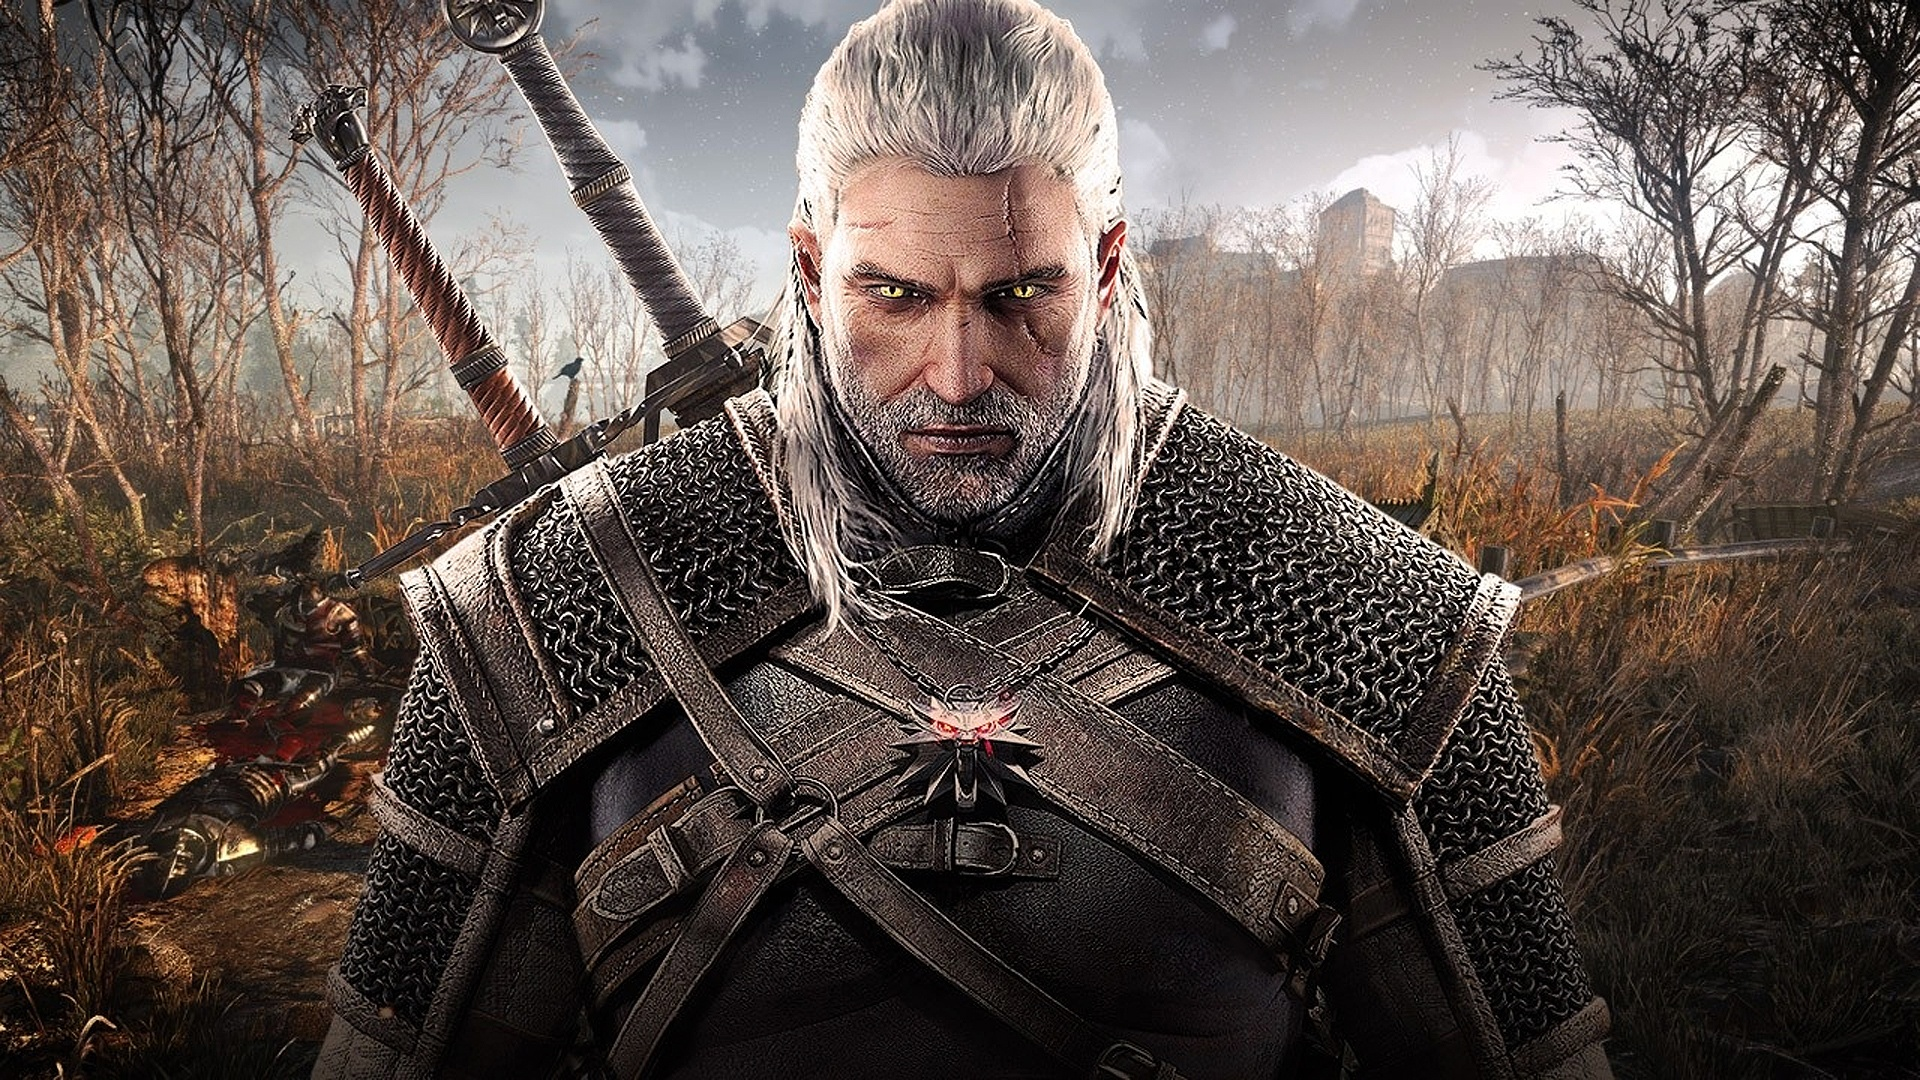 Five Actors Who Could Play Geralt Better in The Witcher Netflix Series